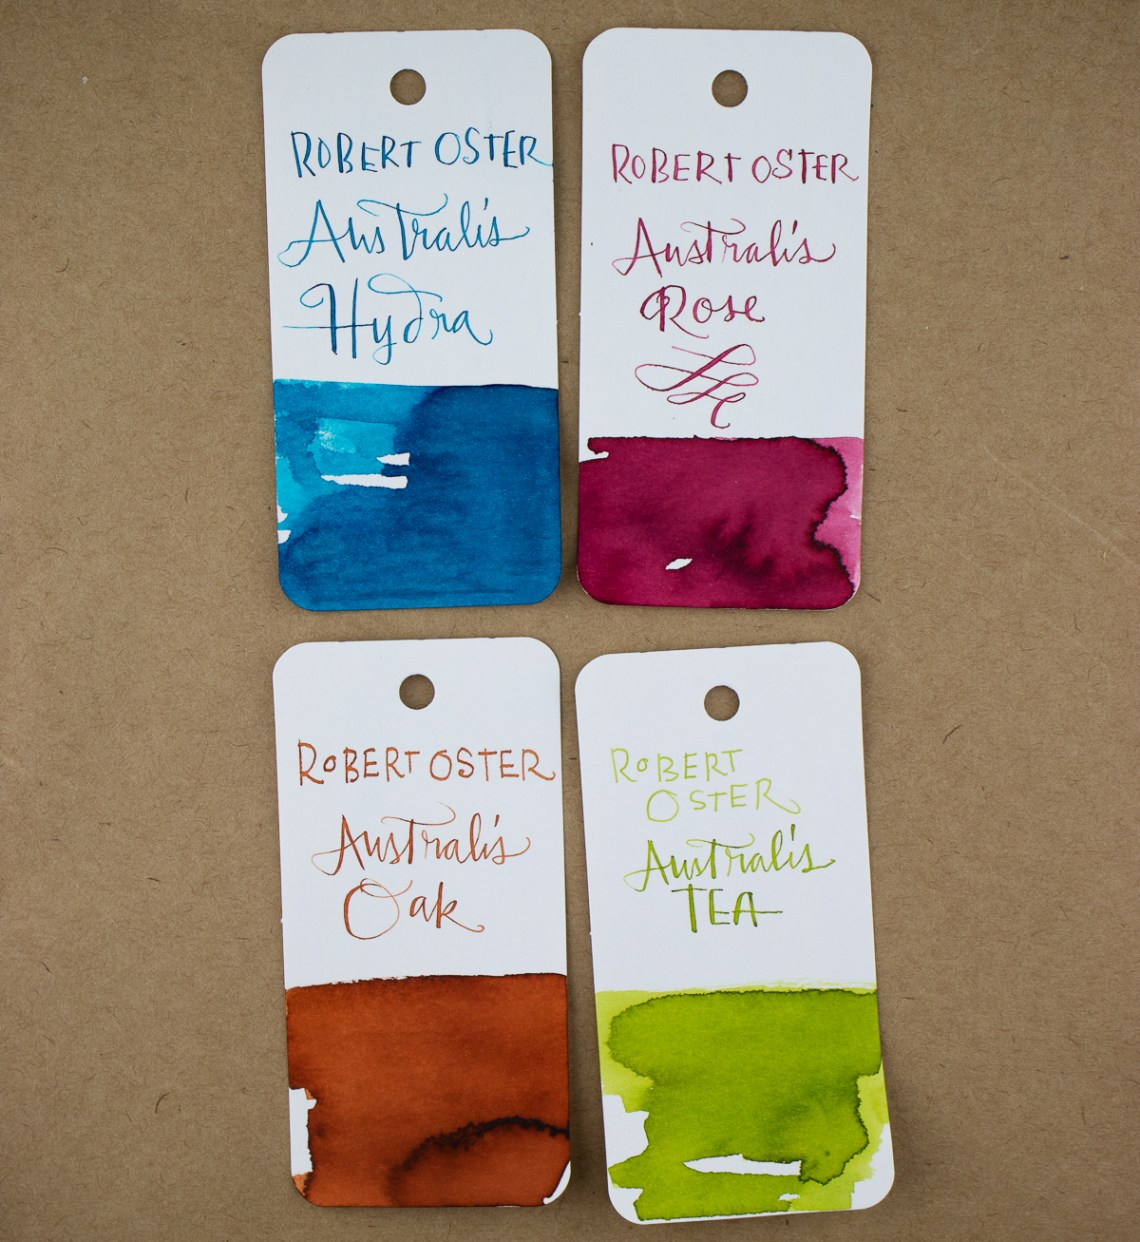 Robert Oster Australis Ink Collection